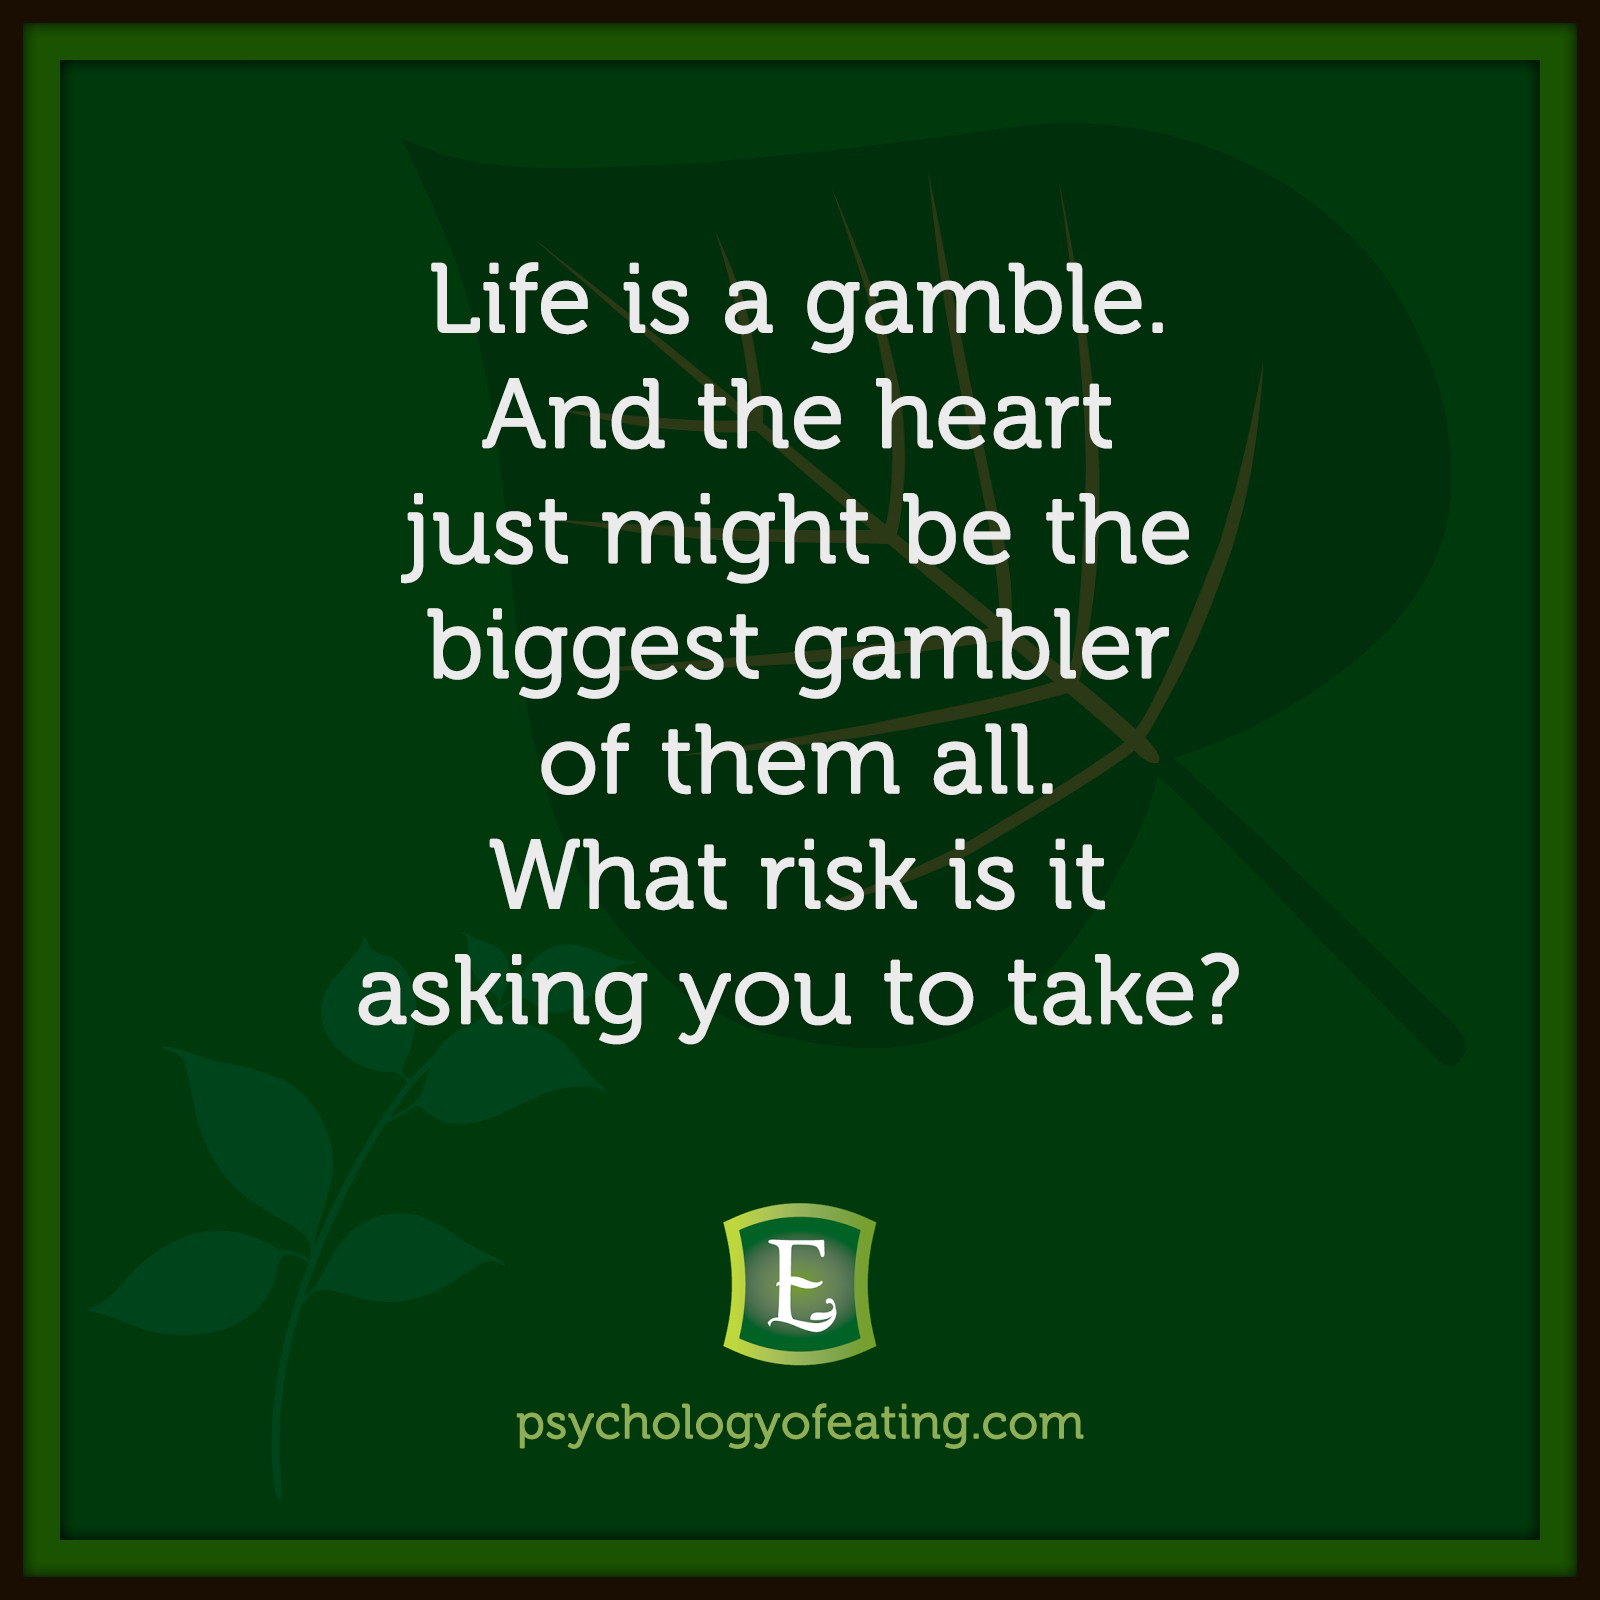 Life is a gamble. And the heart just might be the biggest gambler of them all. What risk is it asking you to take?   #health #nutrition #eatingpsychology #IPE